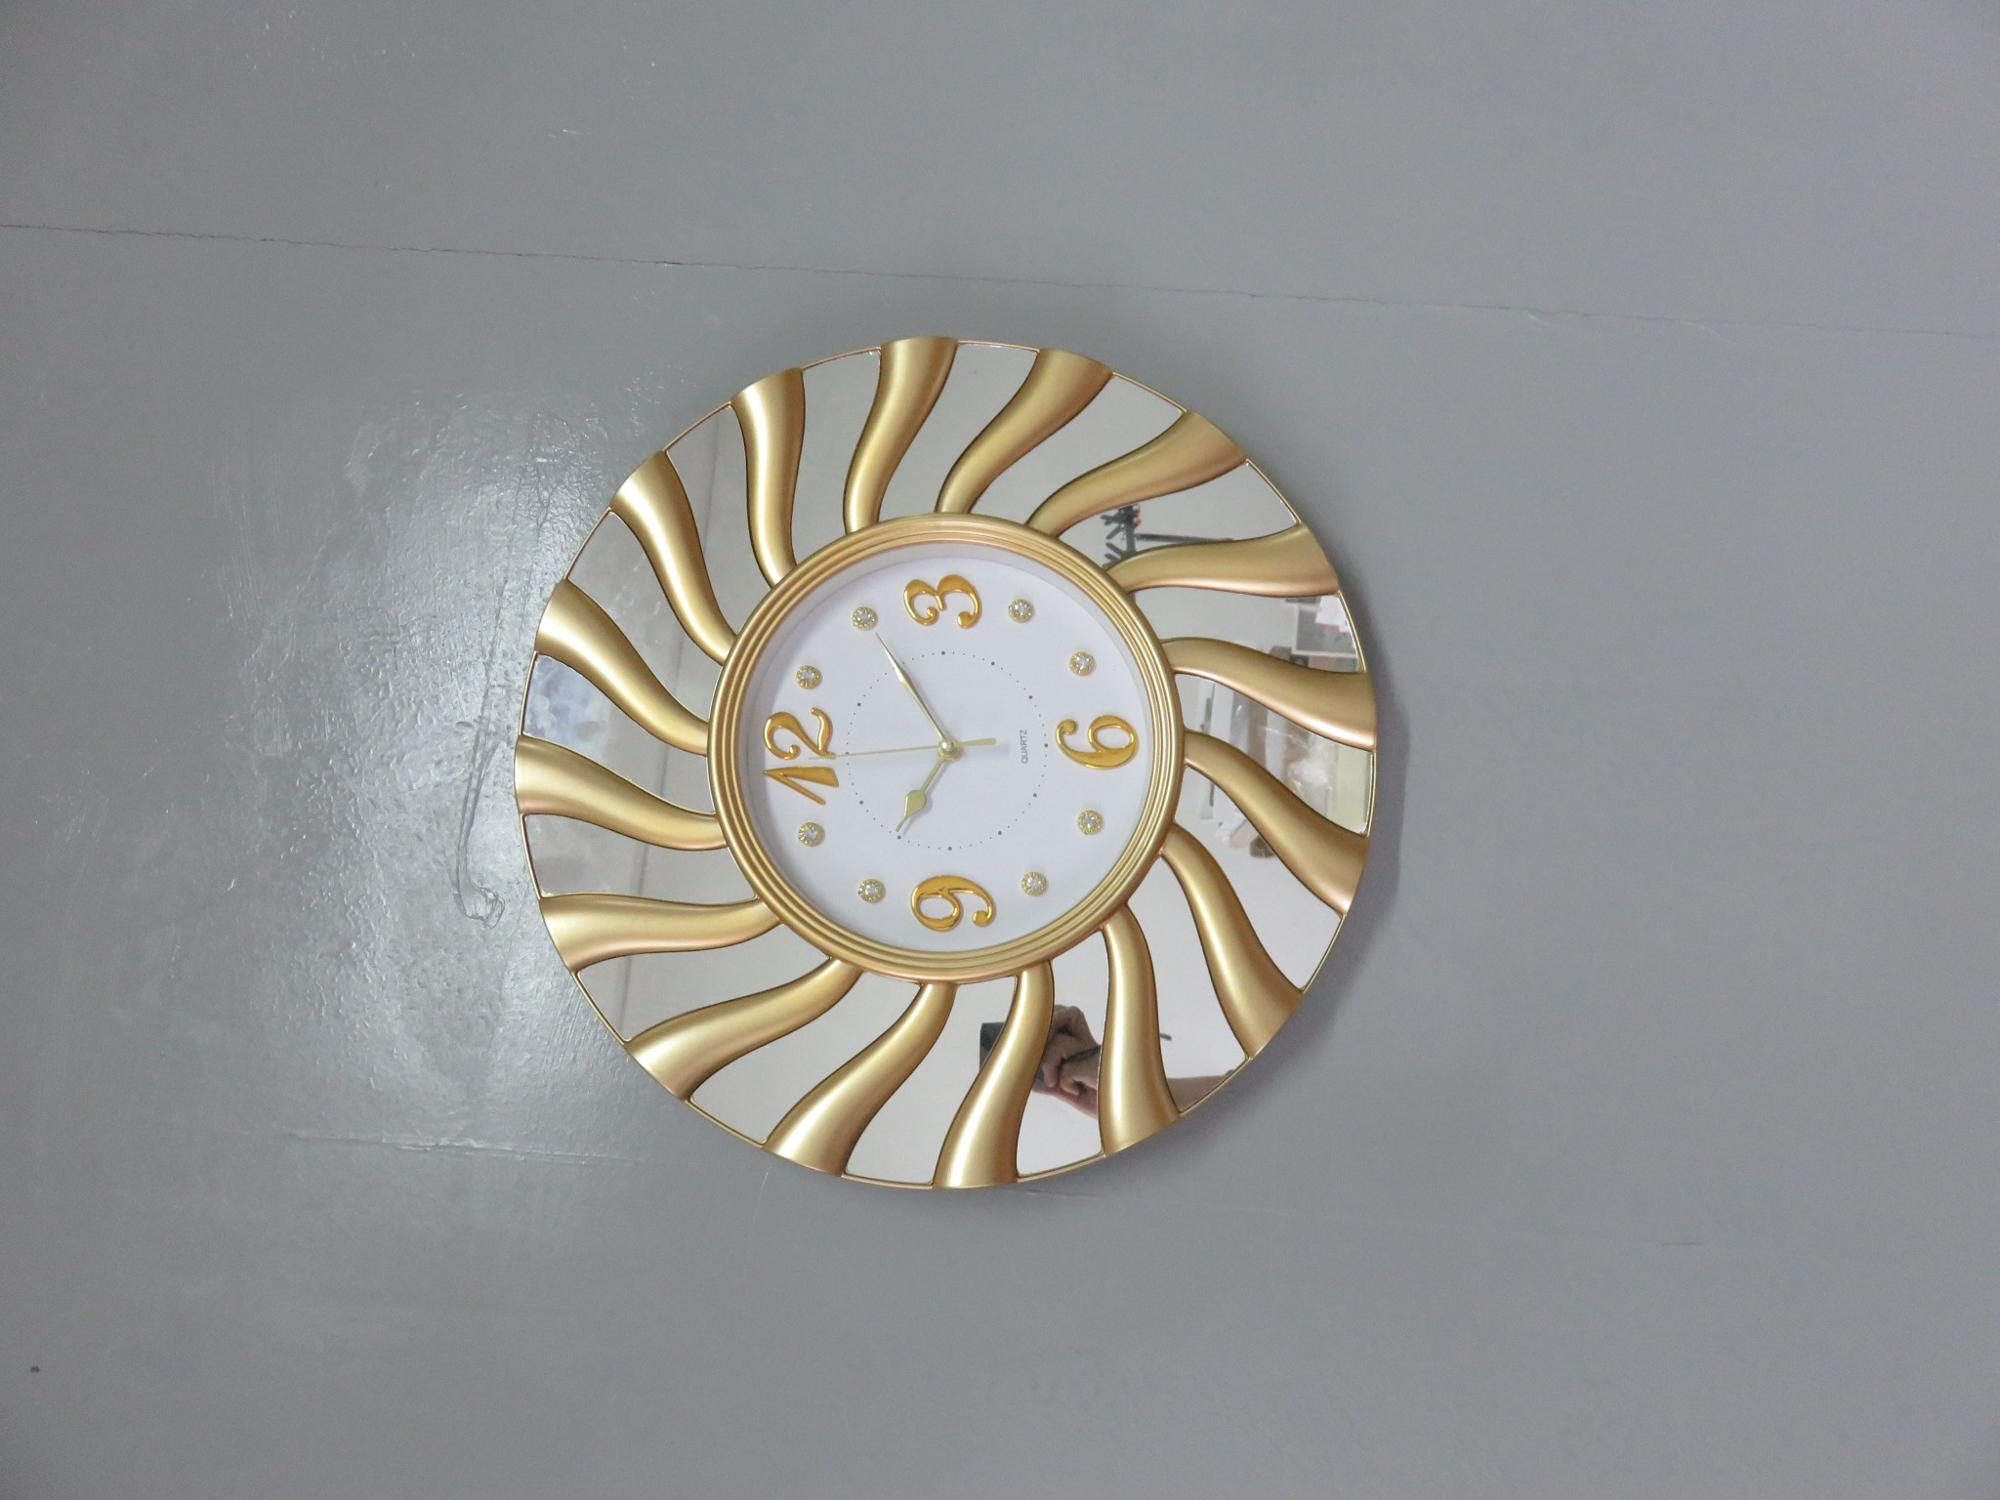 Decorative wall clock high quality 45x45cm wall clock  home deco